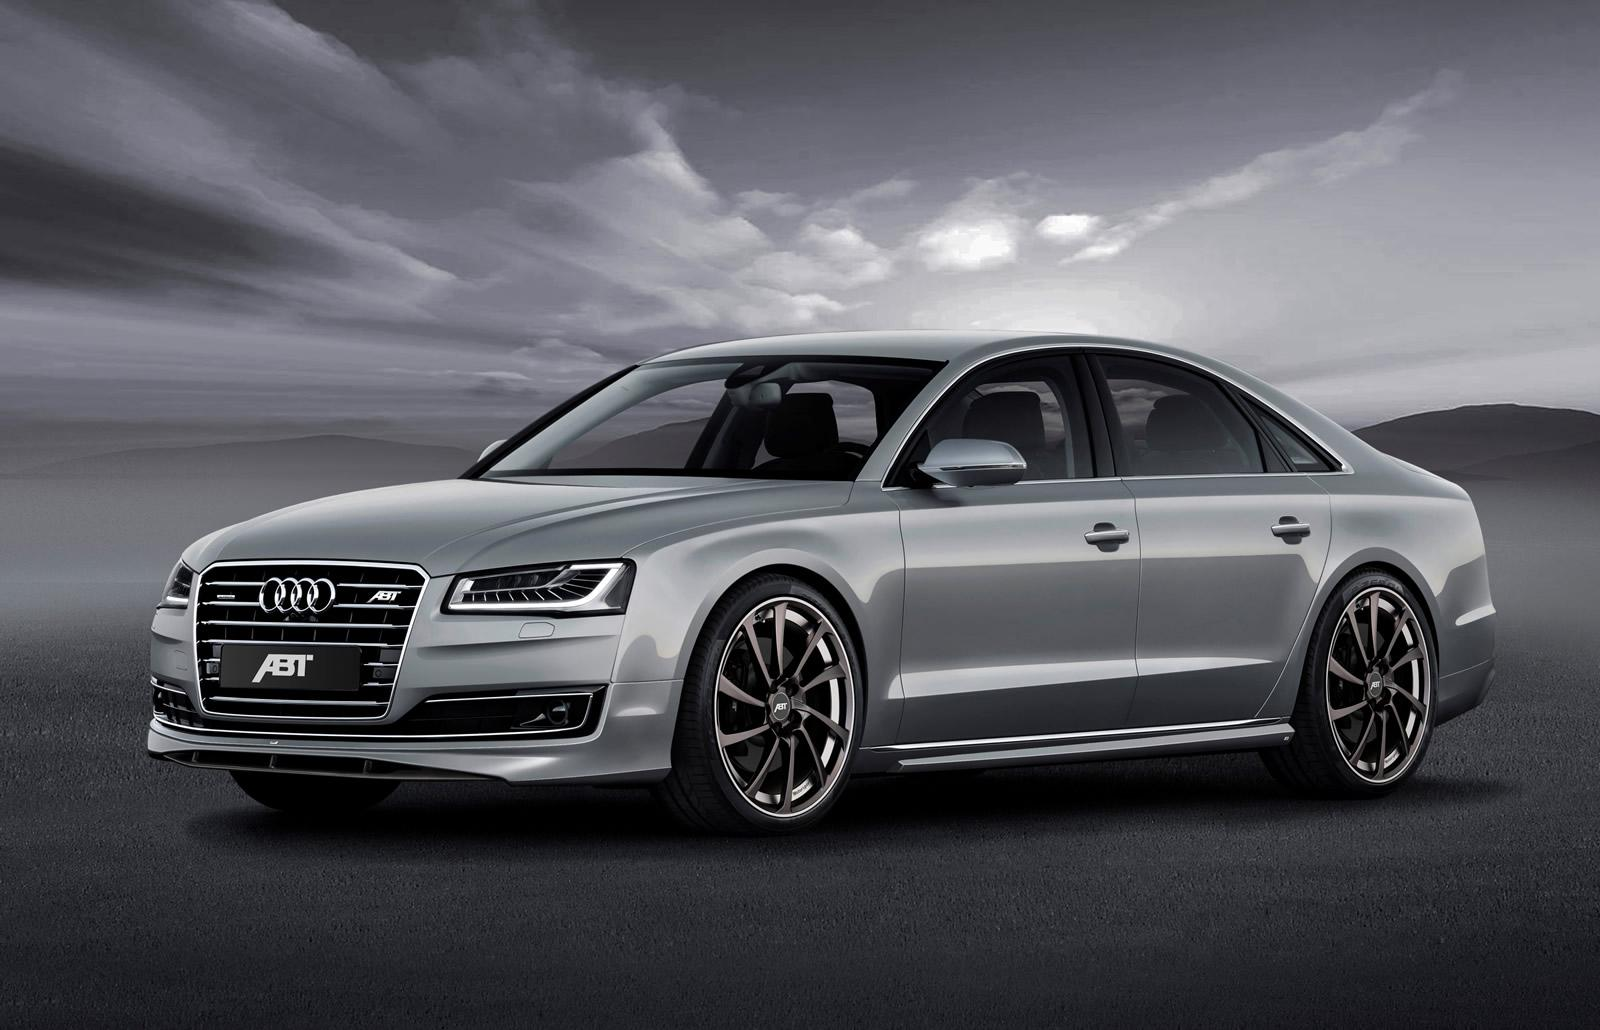 audi a8 facelift tuned to 540 hp by abt sportsline. Black Bedroom Furniture Sets. Home Design Ideas